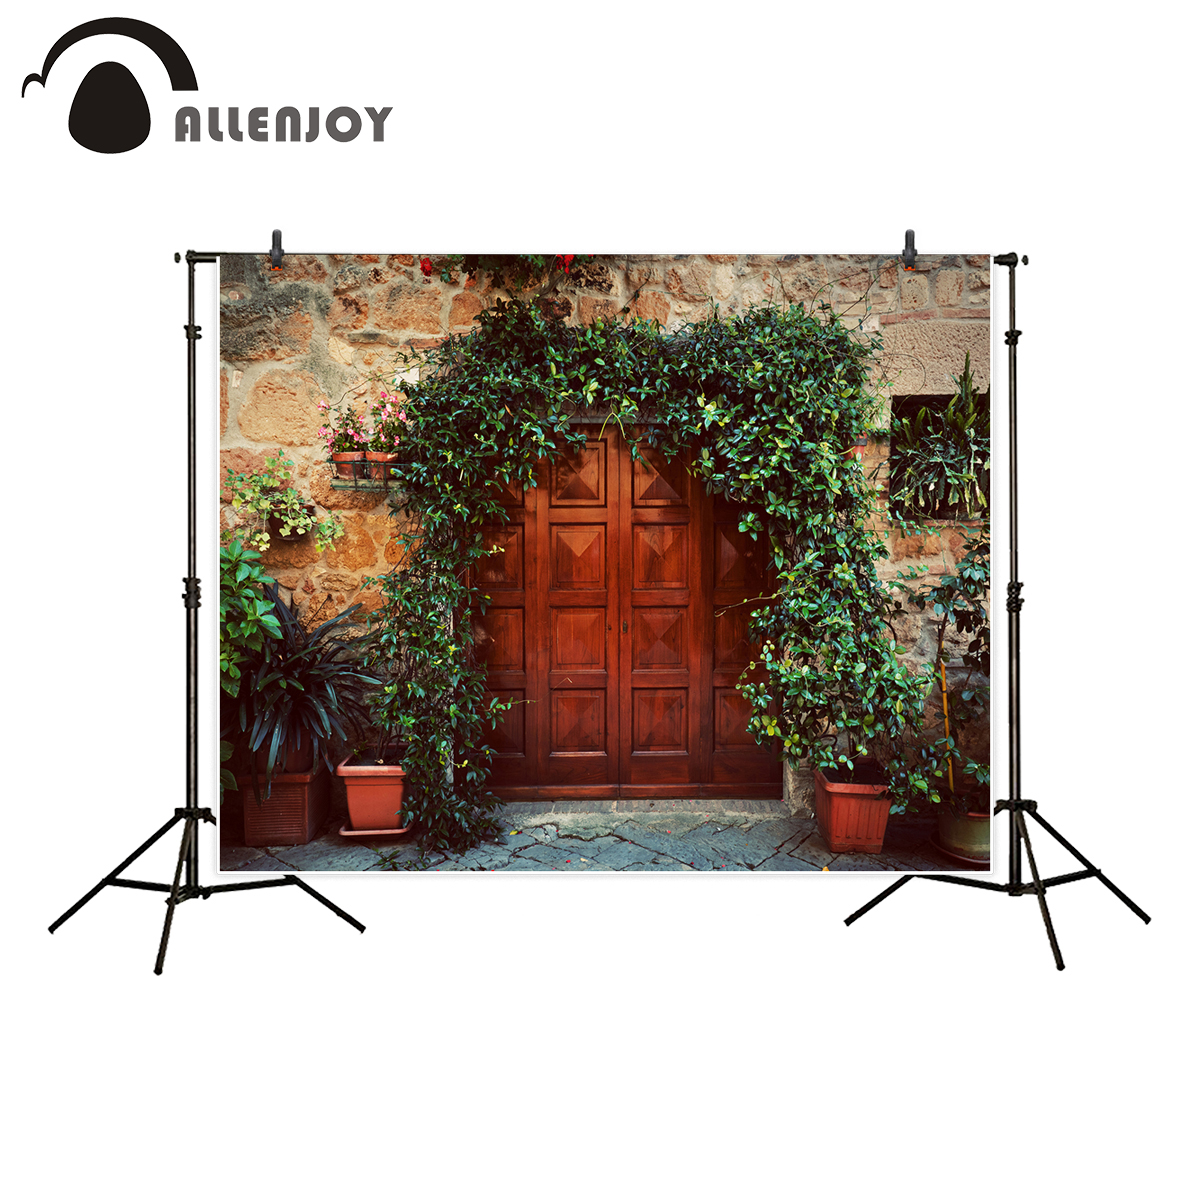 Allenjoy photography backdrop vintage wood door retro brick wall background photocall photo studio printed photobooth allenjoy photography backdrop brick wall wooden floor white baby shower children background photo studio photocall